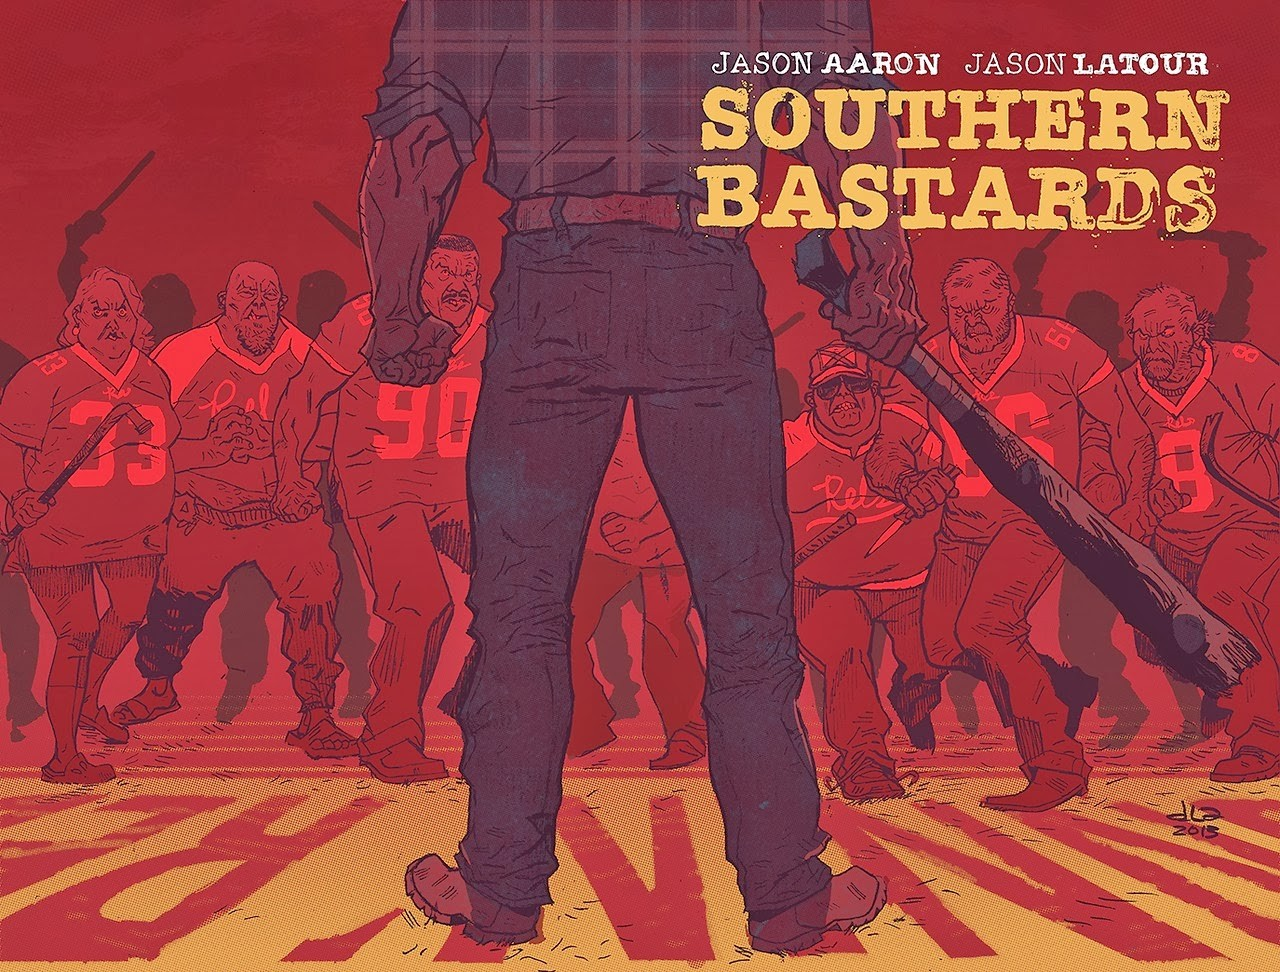 Out from the Past: Southern Bastards Masterfully Explores the Complexity of the South